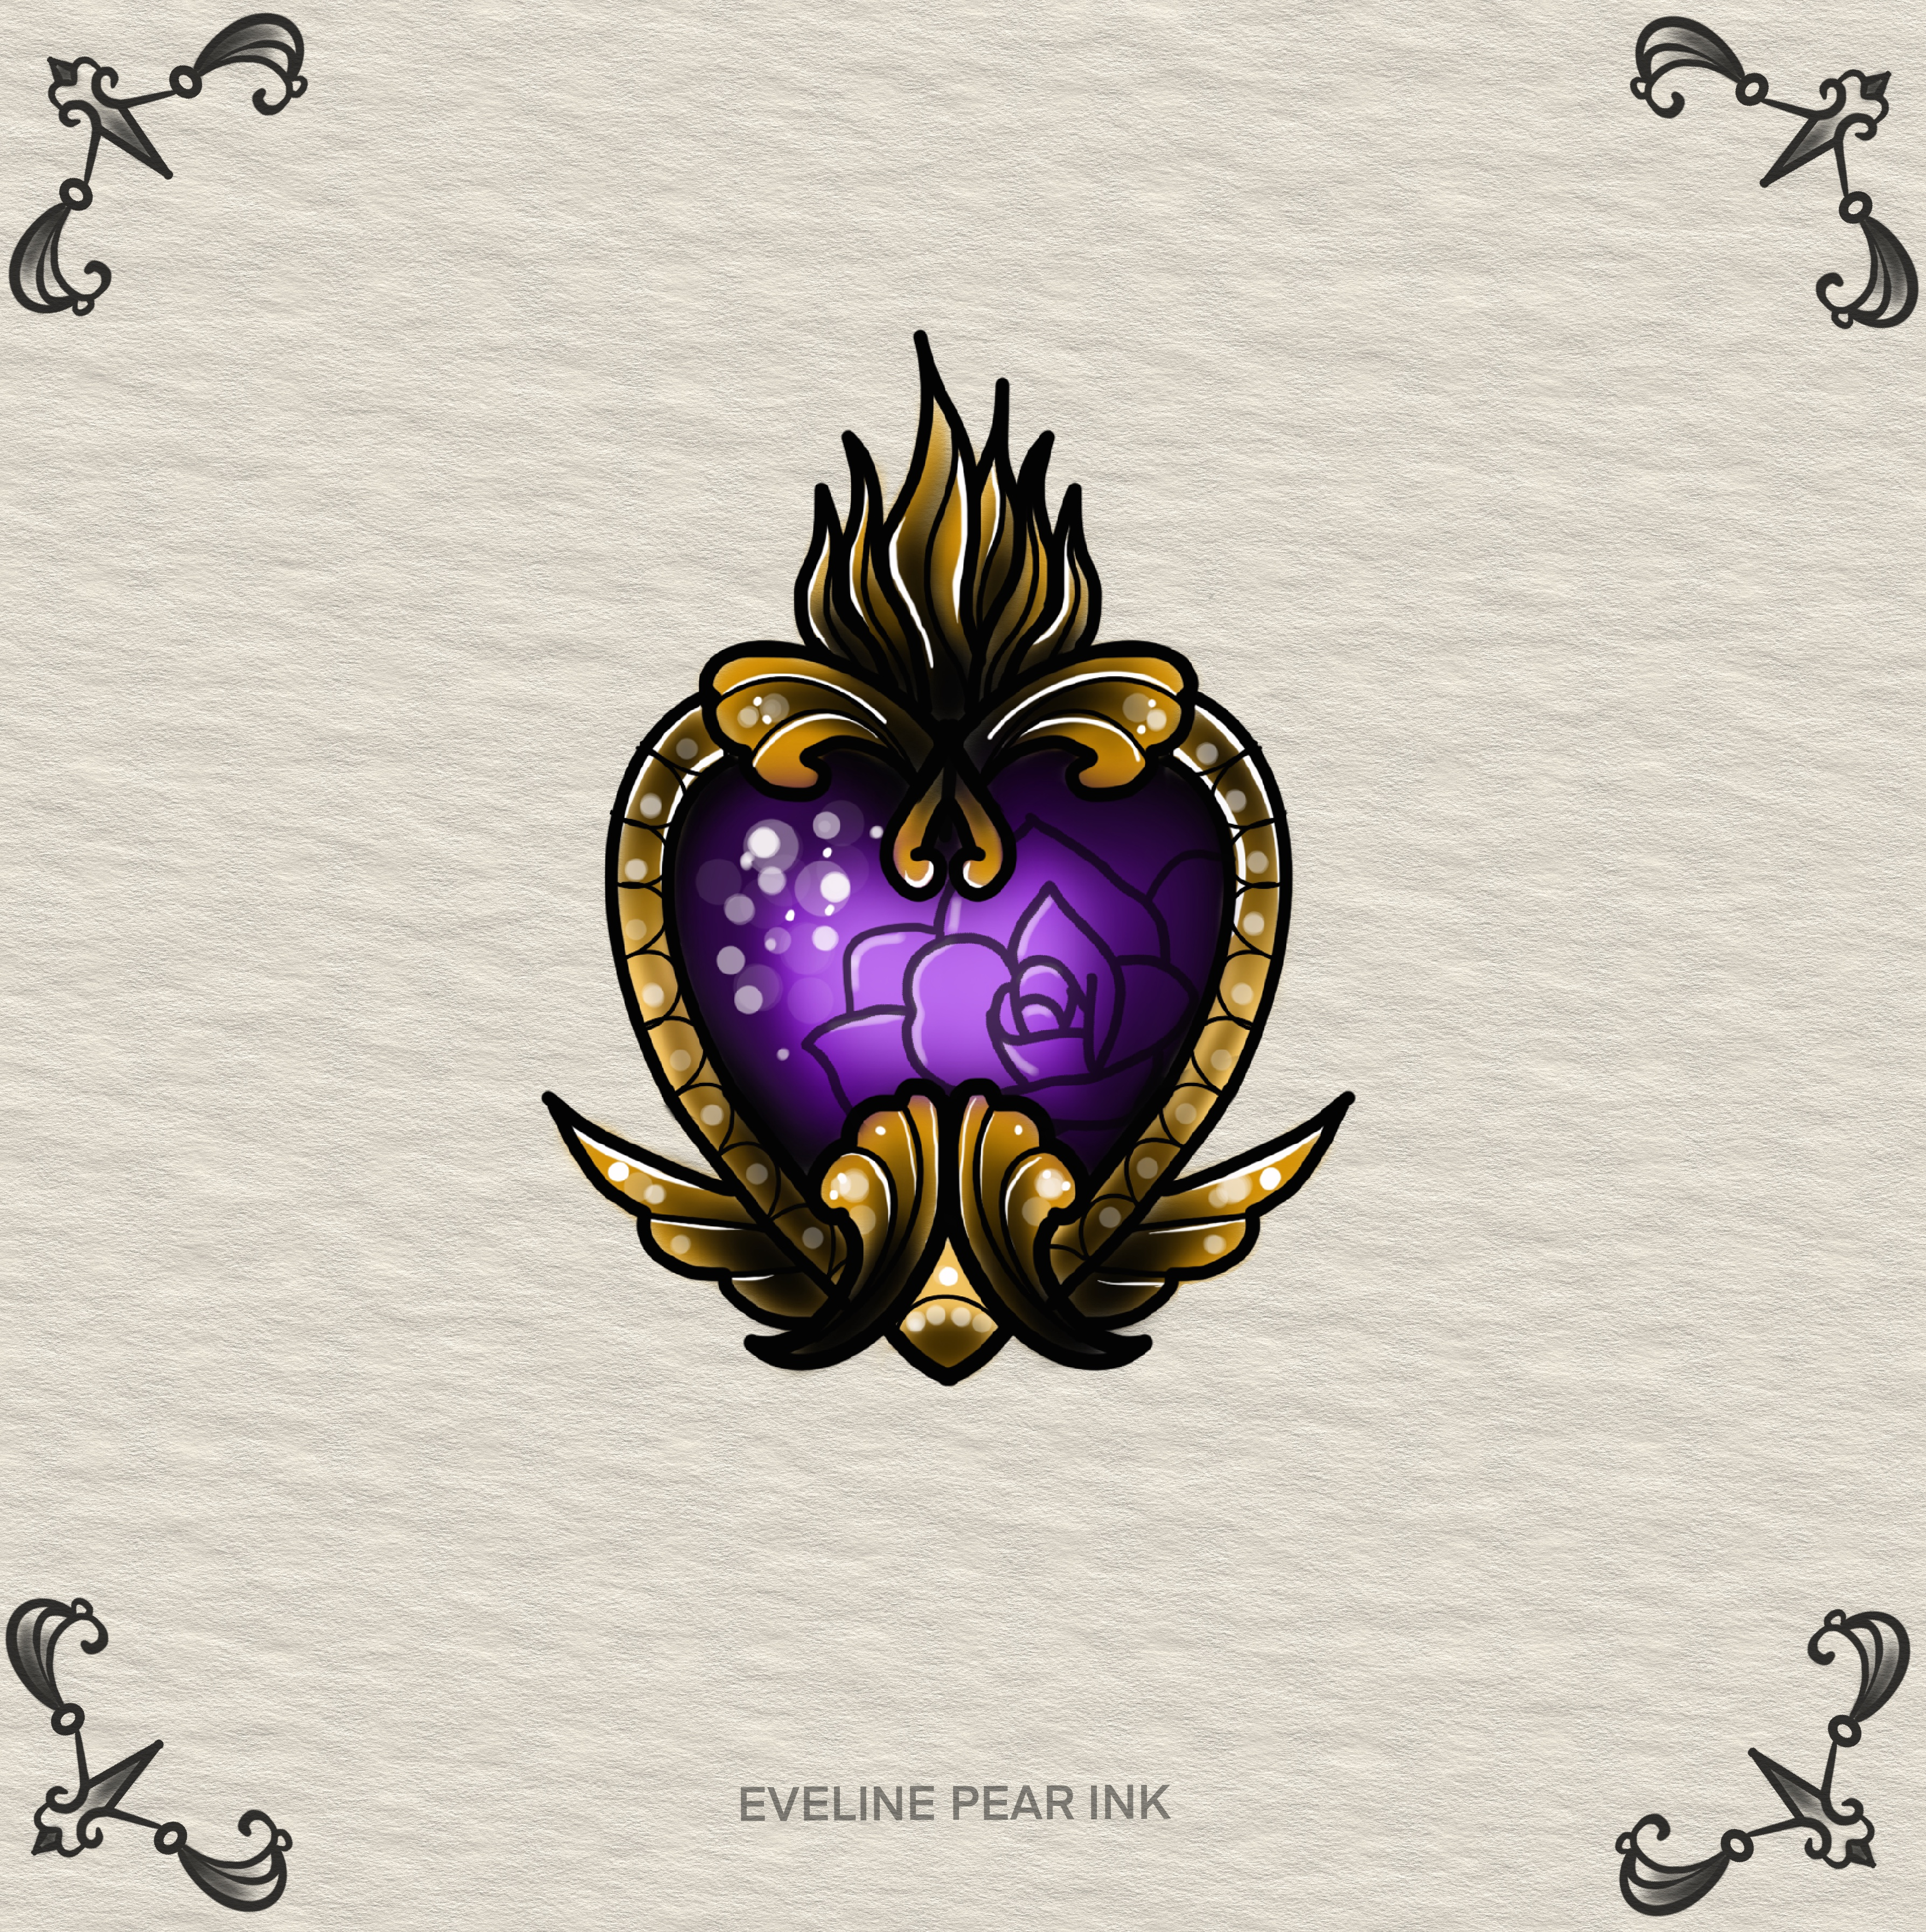 Eveline Pear Ink inksearch tattoo